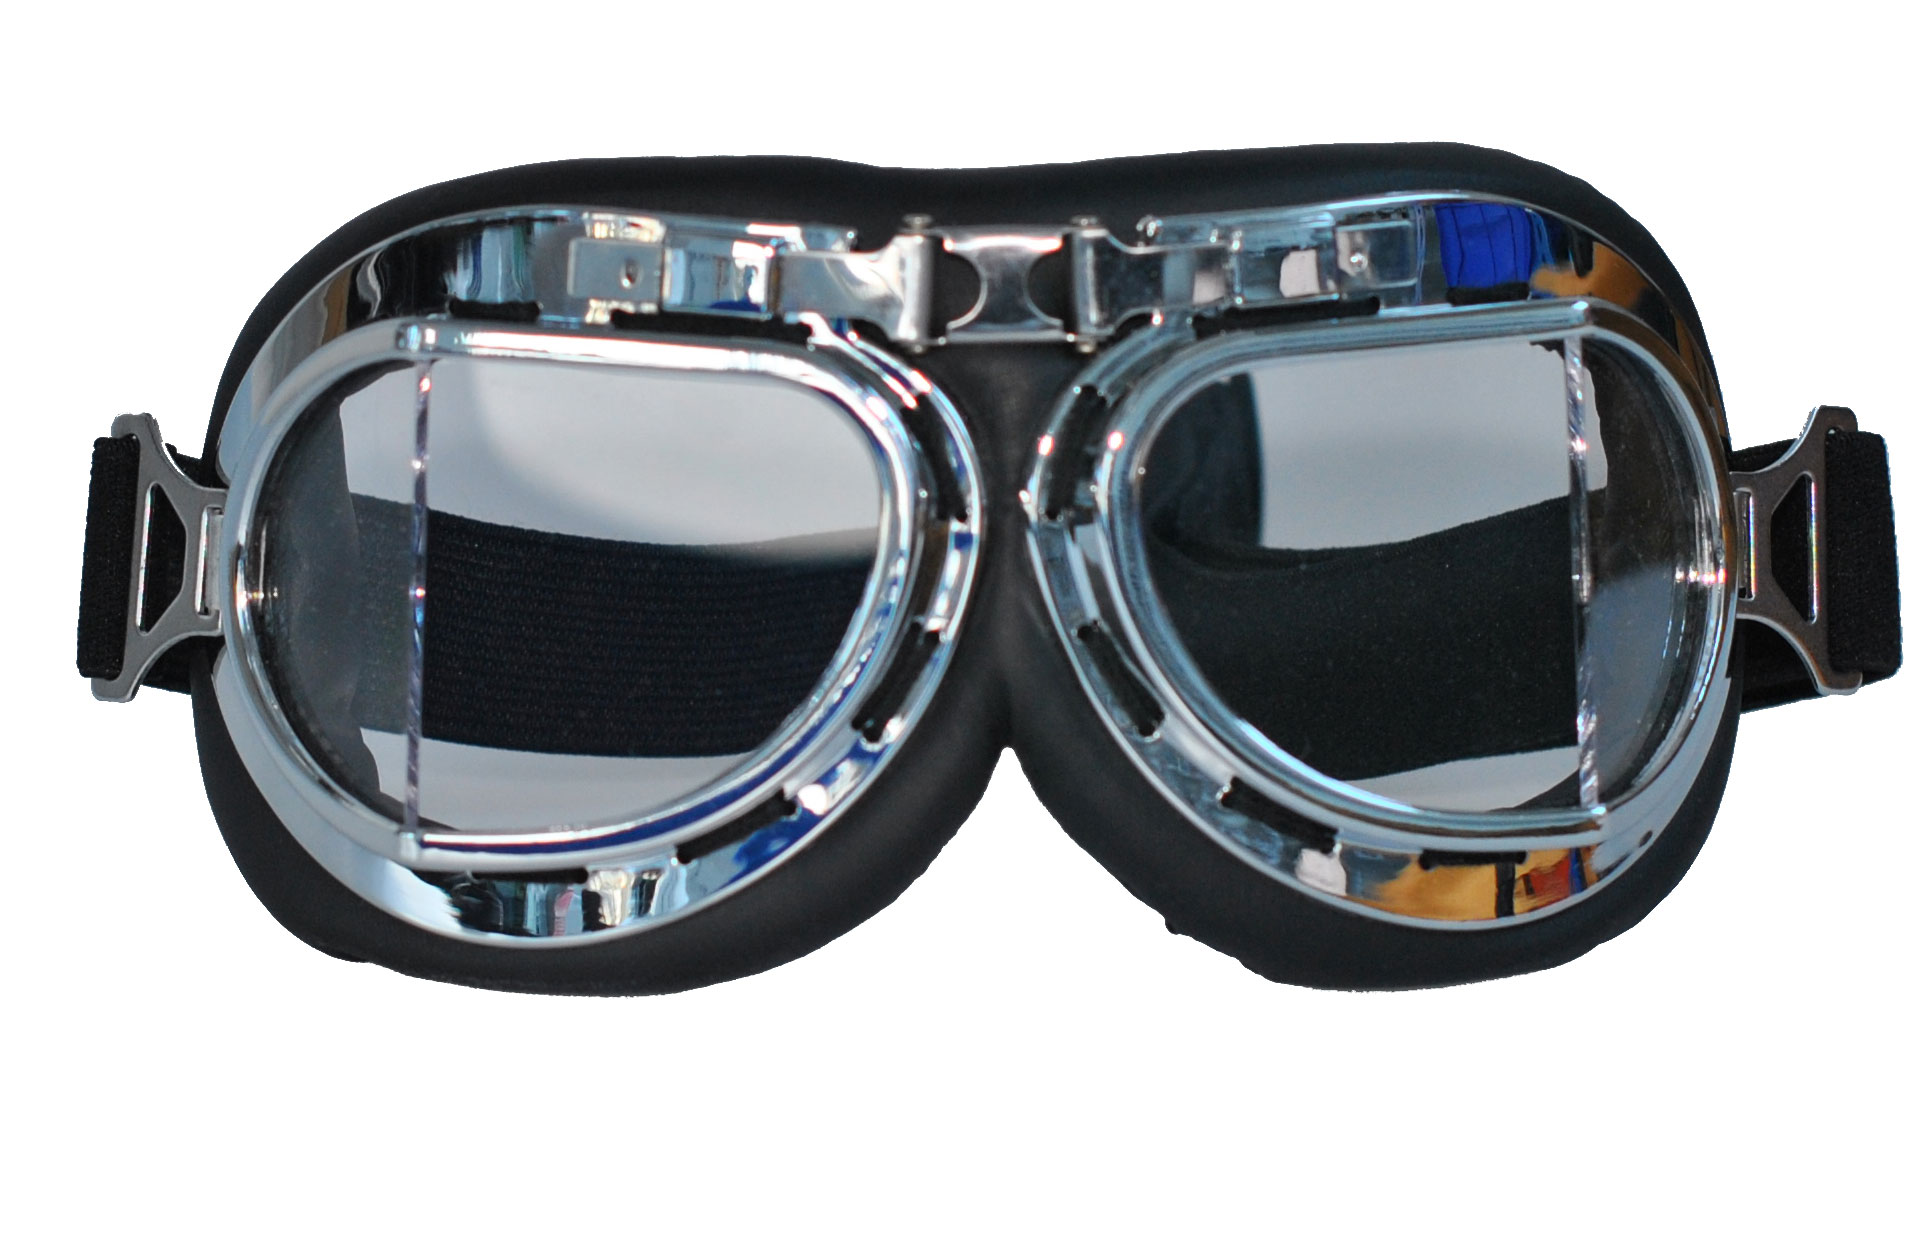 Vintage Wwii Aviator Goggles And Retro Scooter Goggles Or